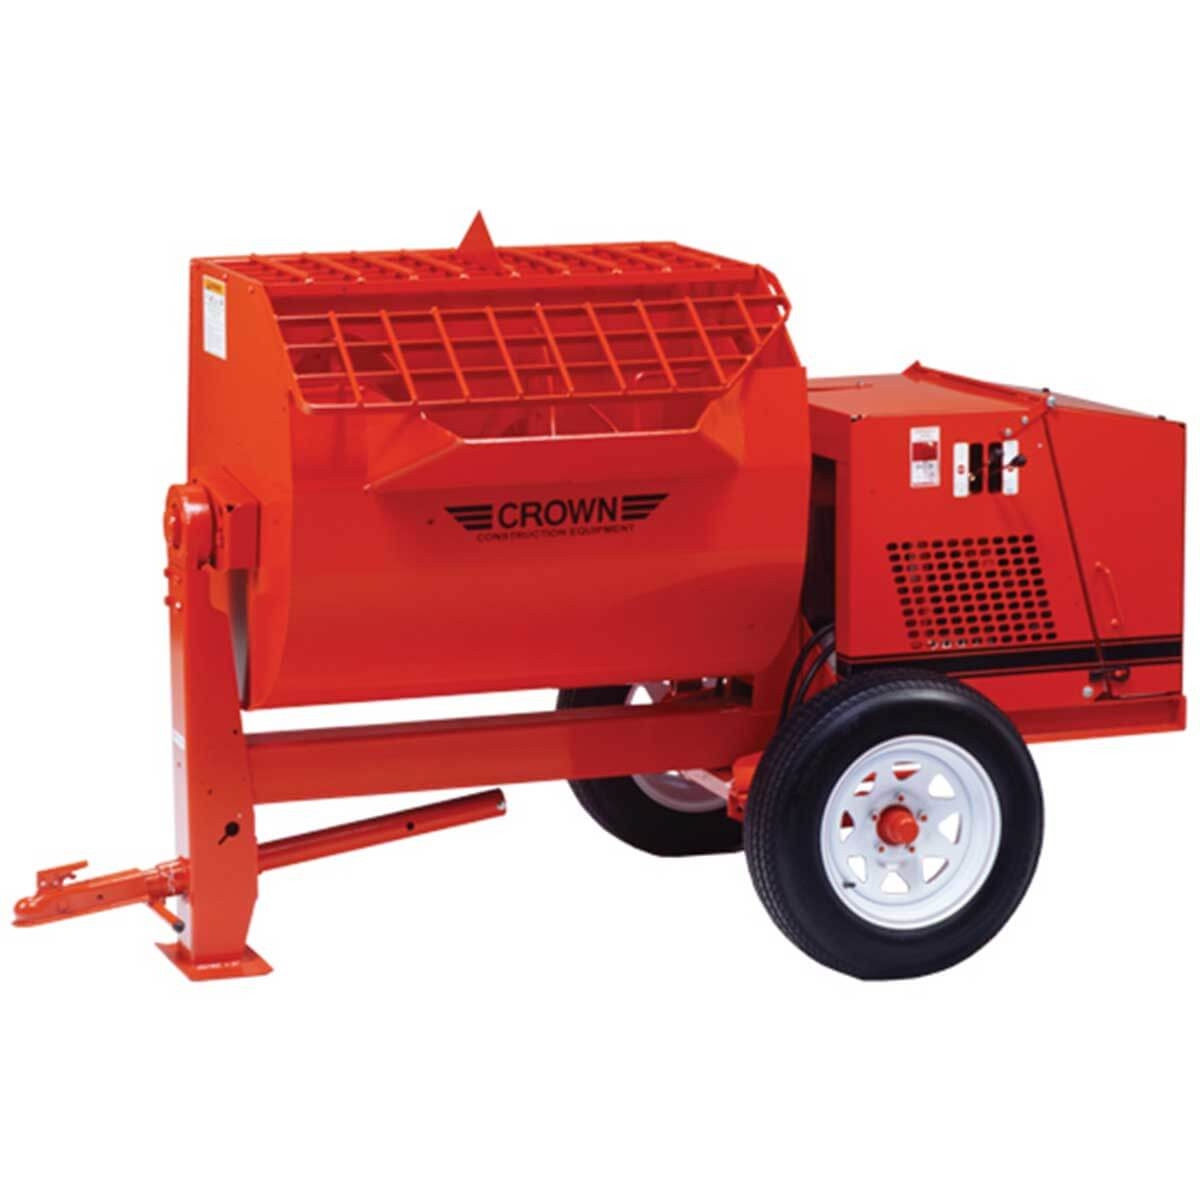 Crown 16SH Hydraulic Mortar Mixers